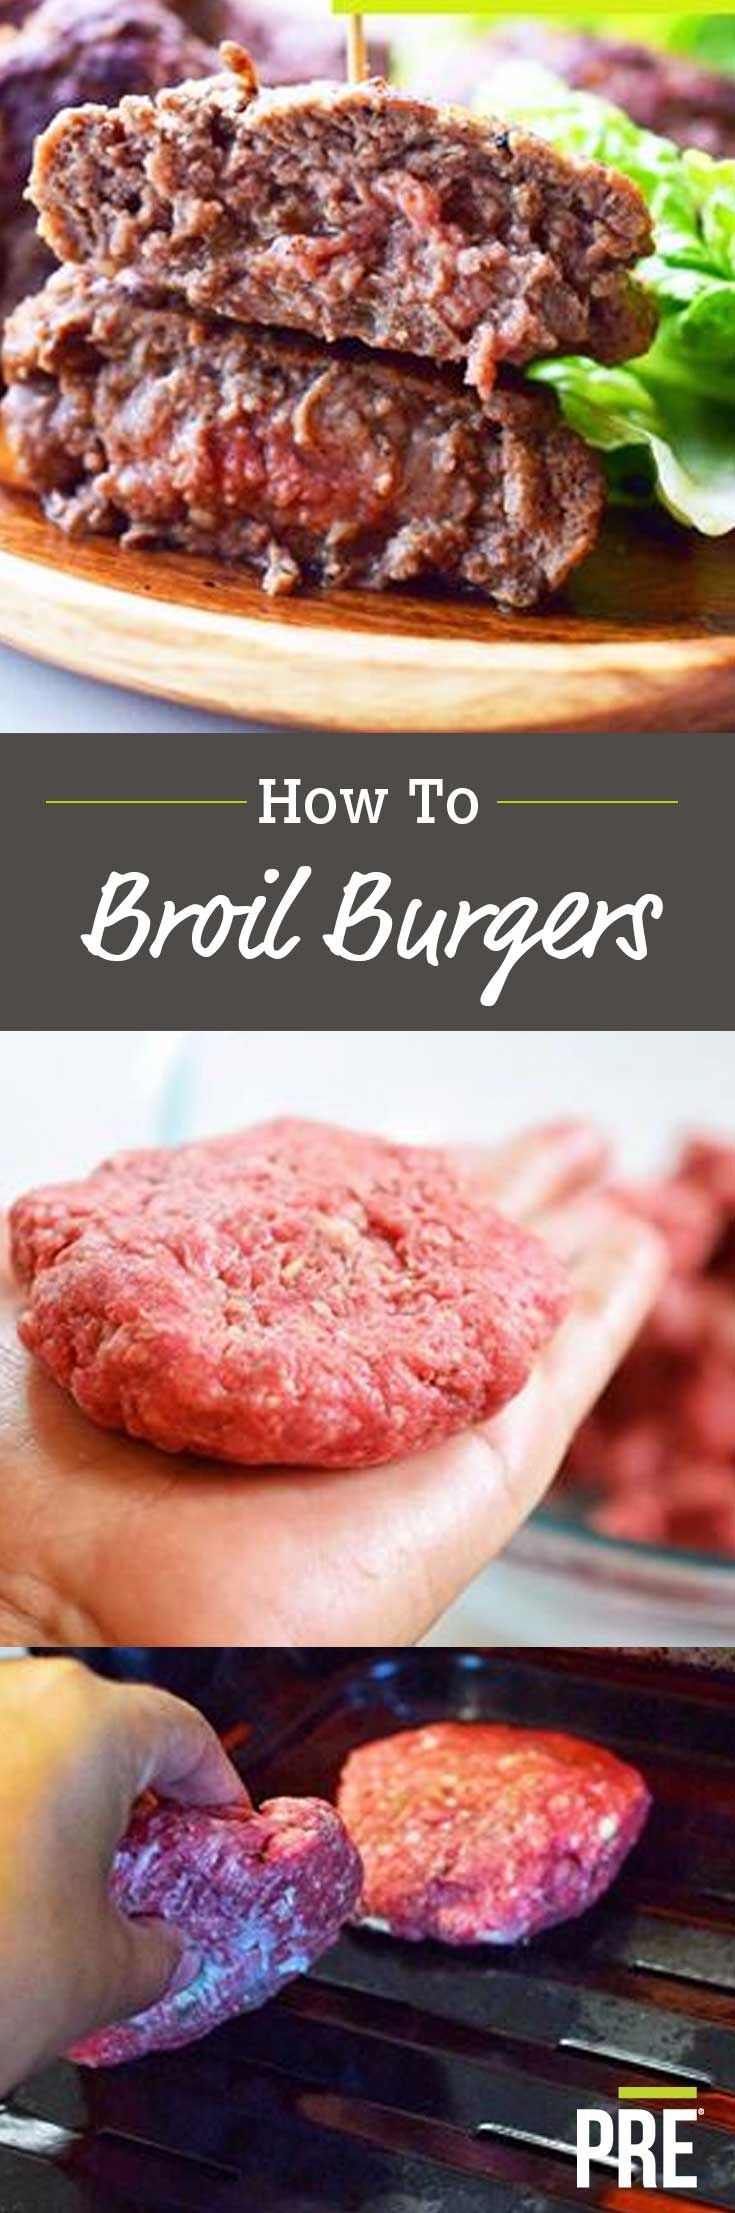 One of the most common questions we hear about burgers is how to broil them. Quick and easy, here's how you do it!  1. Mix PRE 85% ground beef, salt and pepper in a bowl. Shape patties and flatten. 2. Place your broiler pan in your sheet pan. Place in oven. Preheat oven to 400F broil. 3. Broil patties 8 minutes for medium, 10 minutes for well done.